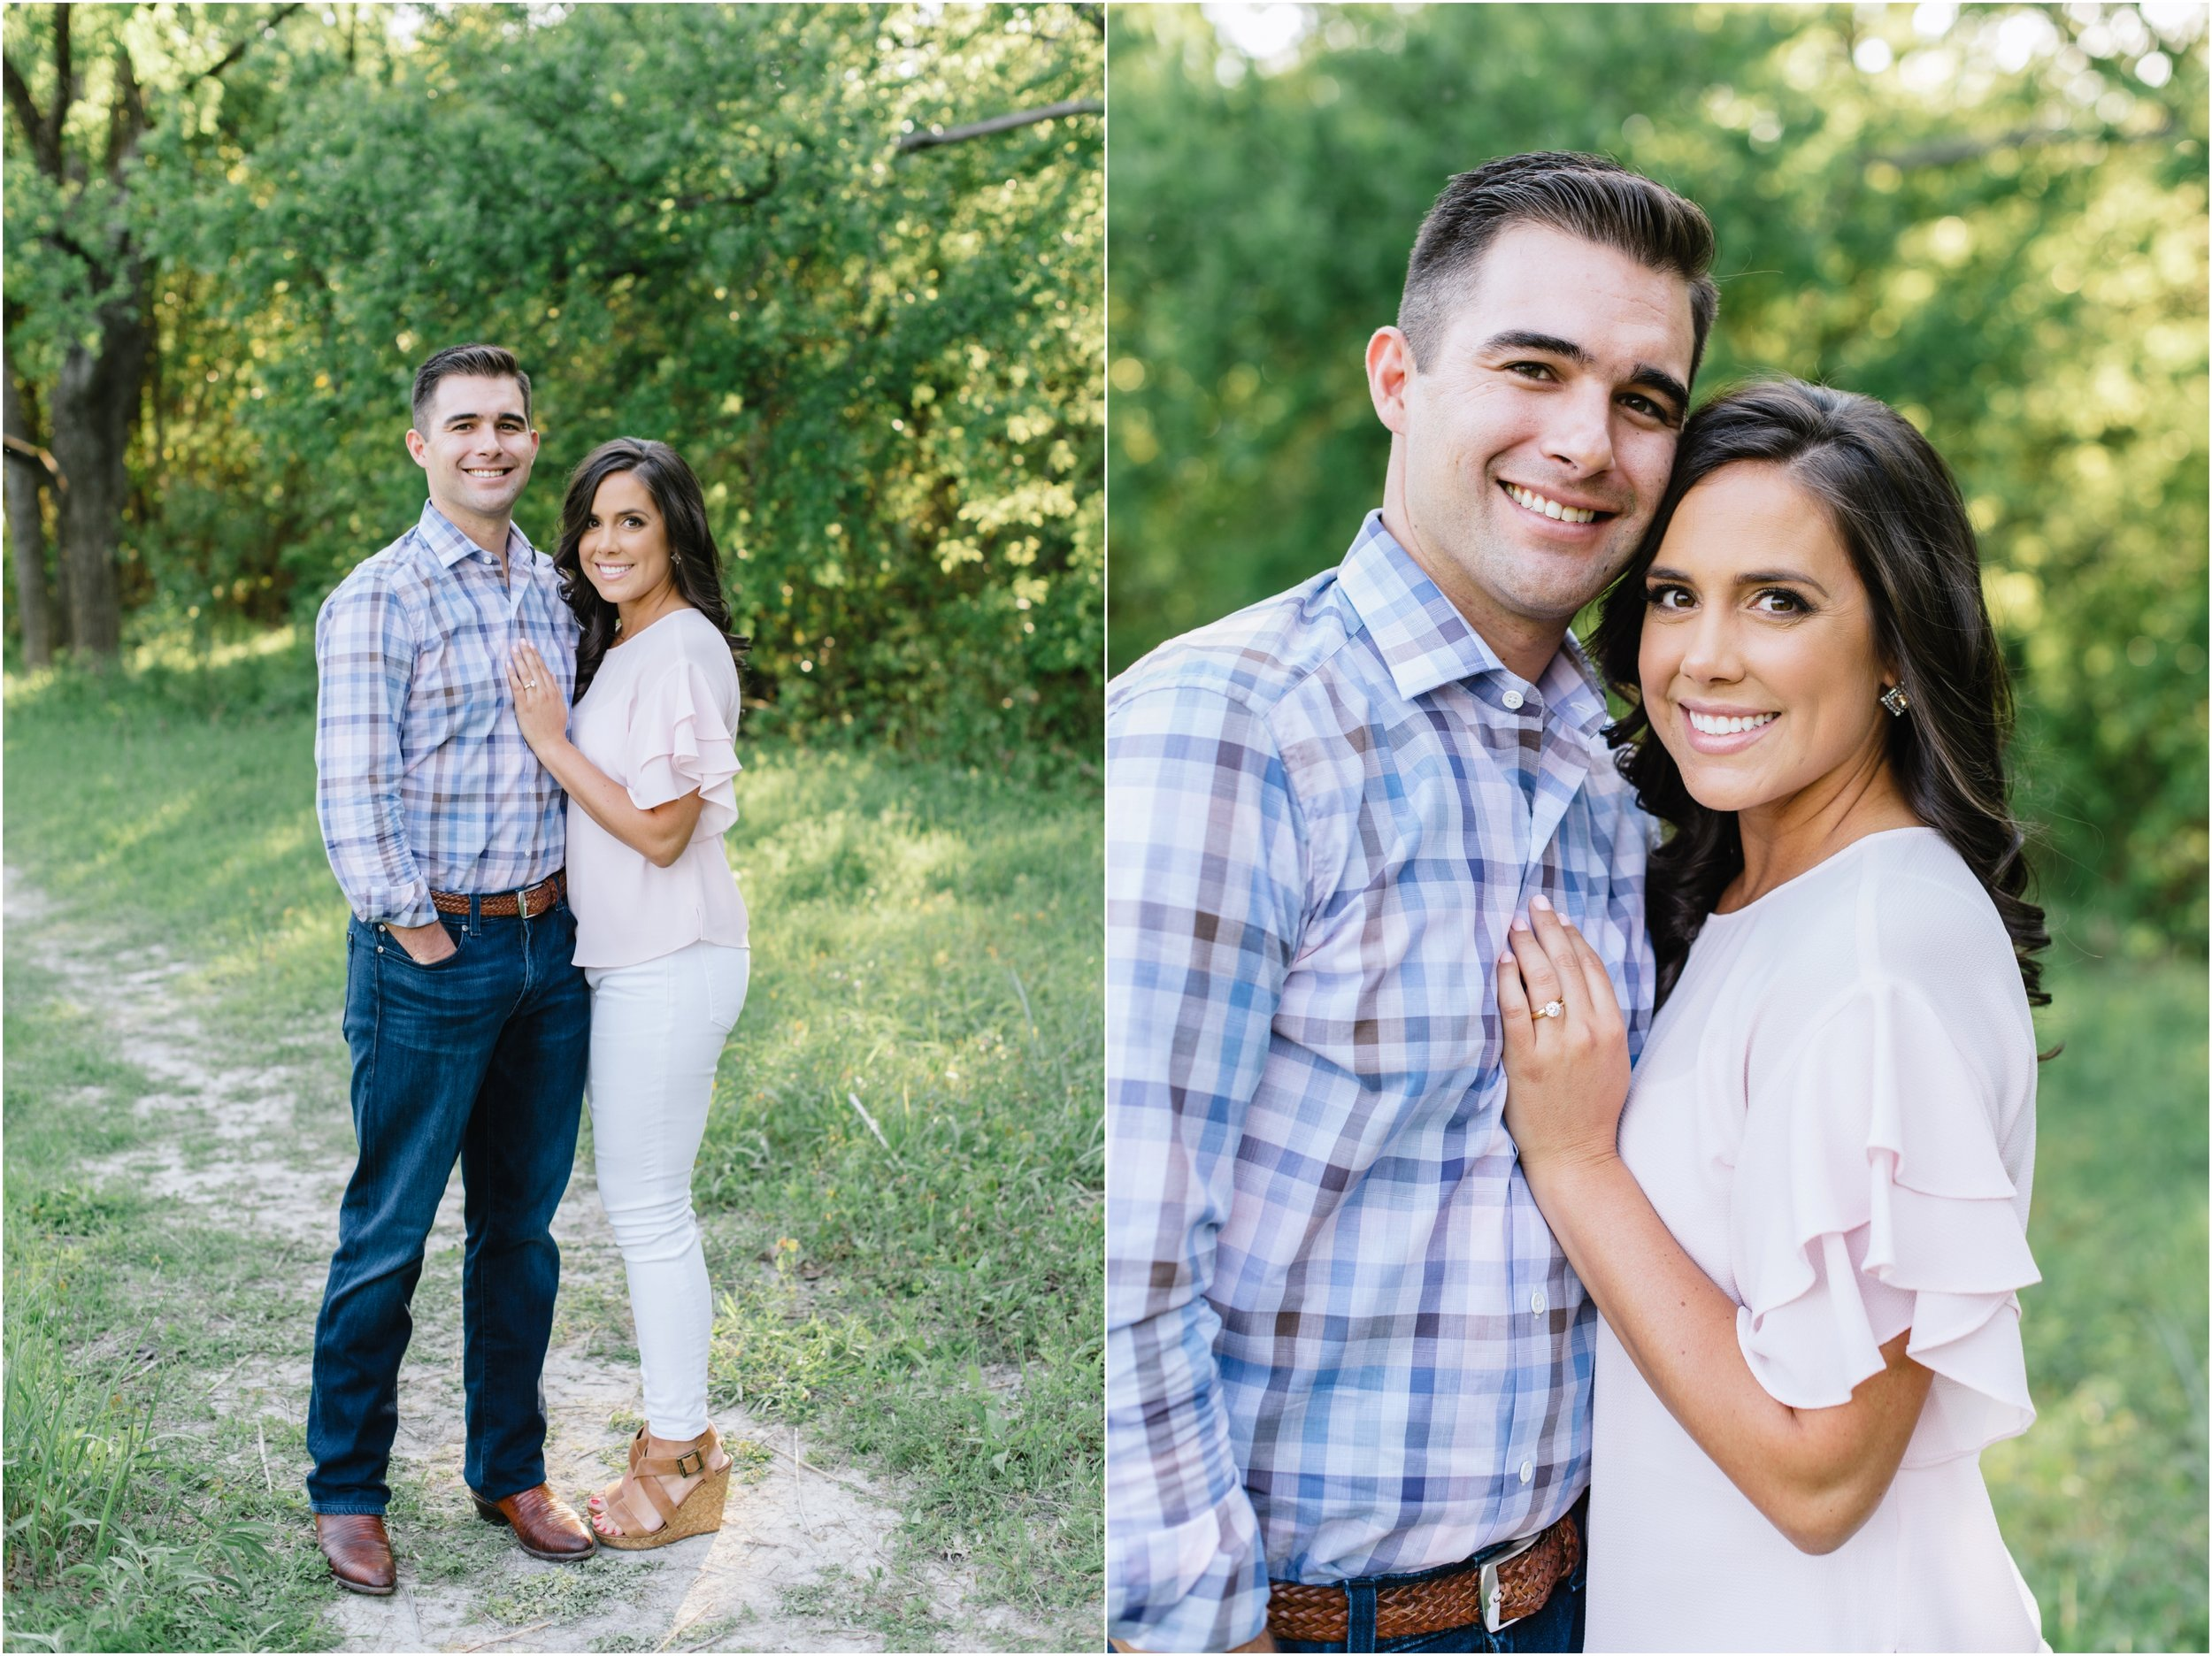 dallasweddingphotographer_texasweddingphotographer_texasweddingphotographers_dallasweddingphotographer_mattandjulieweddings_0849.jpg